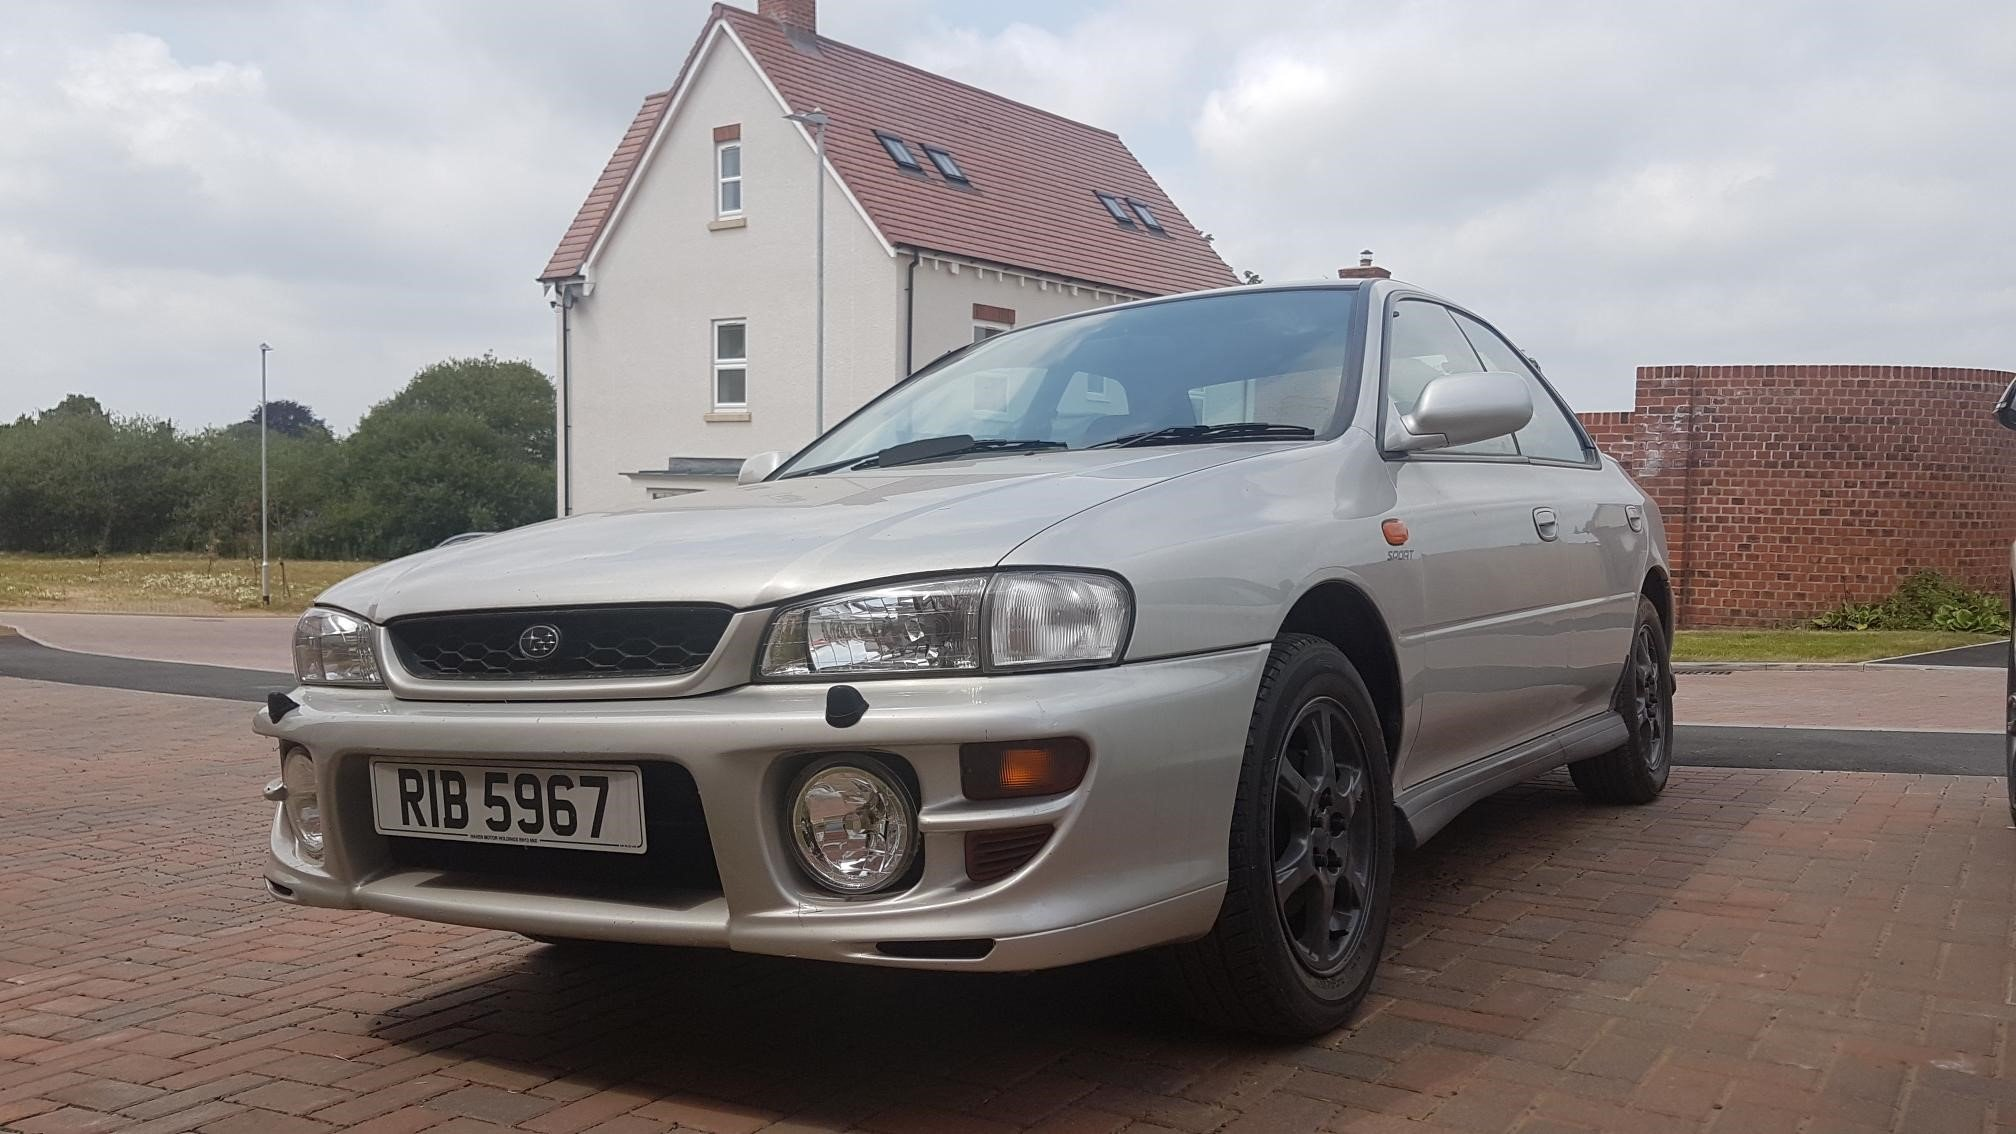 2000 Impreza Sport AWD  For Sale (picture 1 of 6)